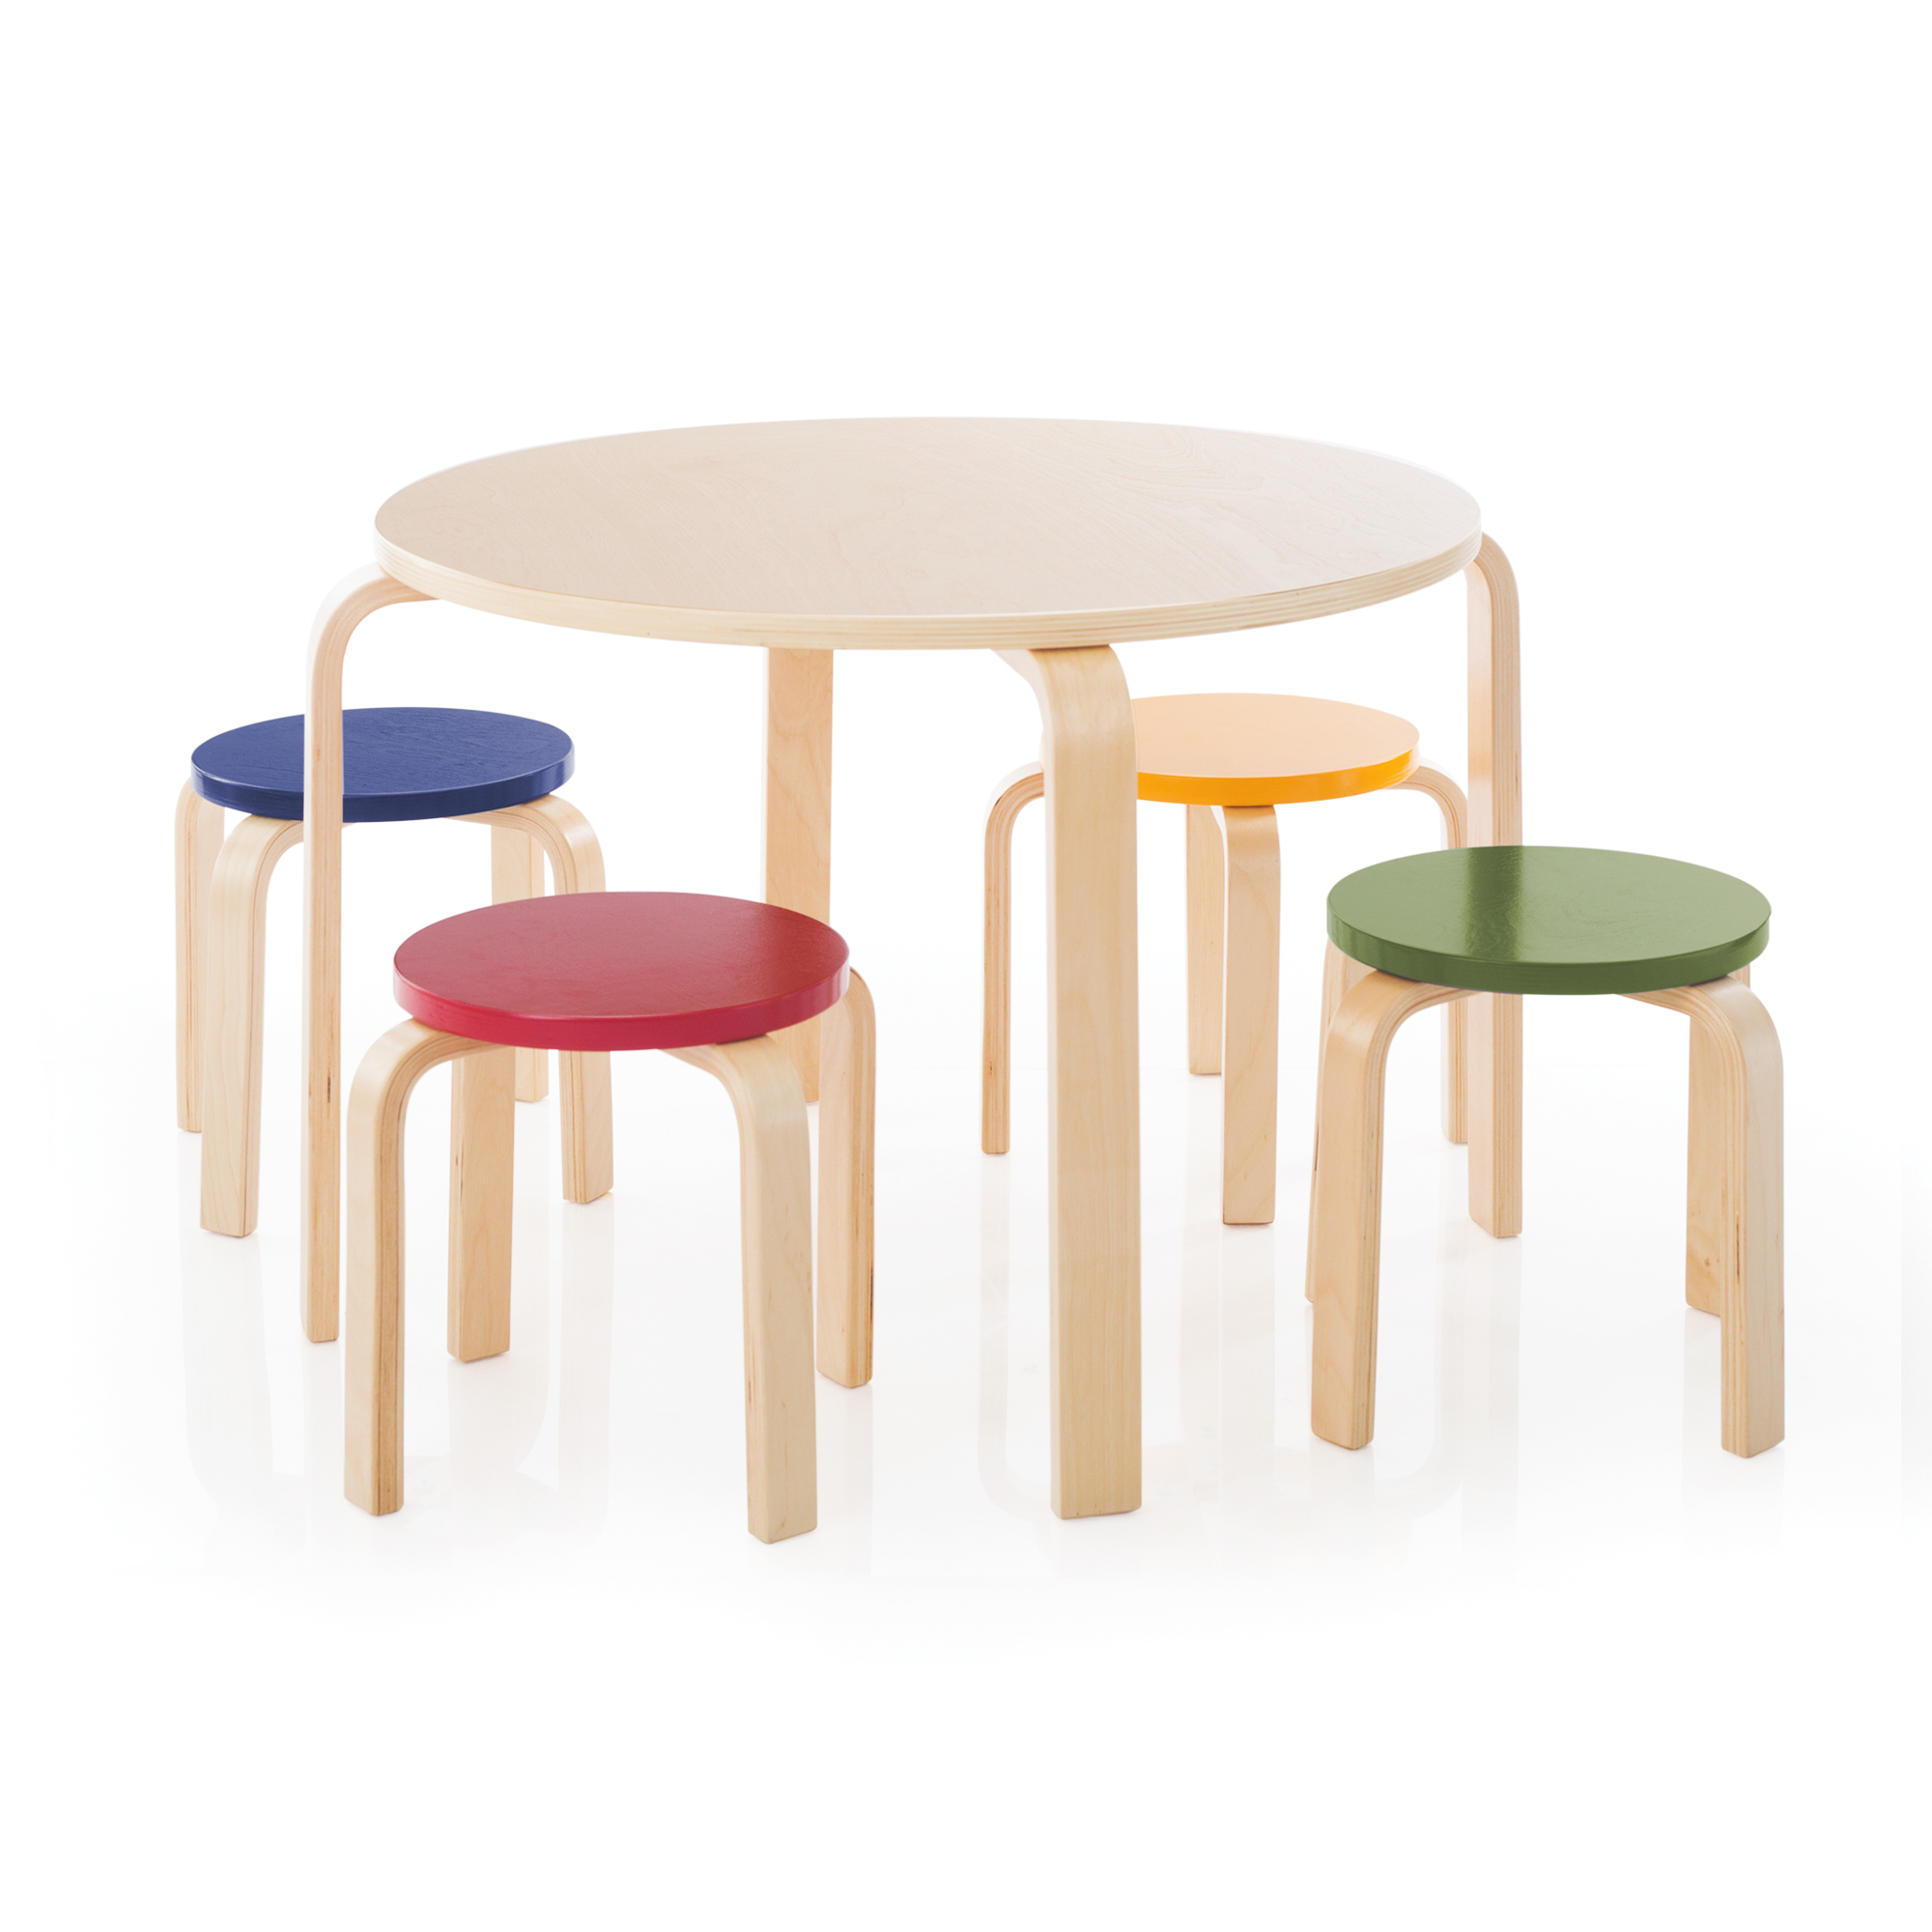 Table Chairs Walmart: Nordic Table & Chairs Set